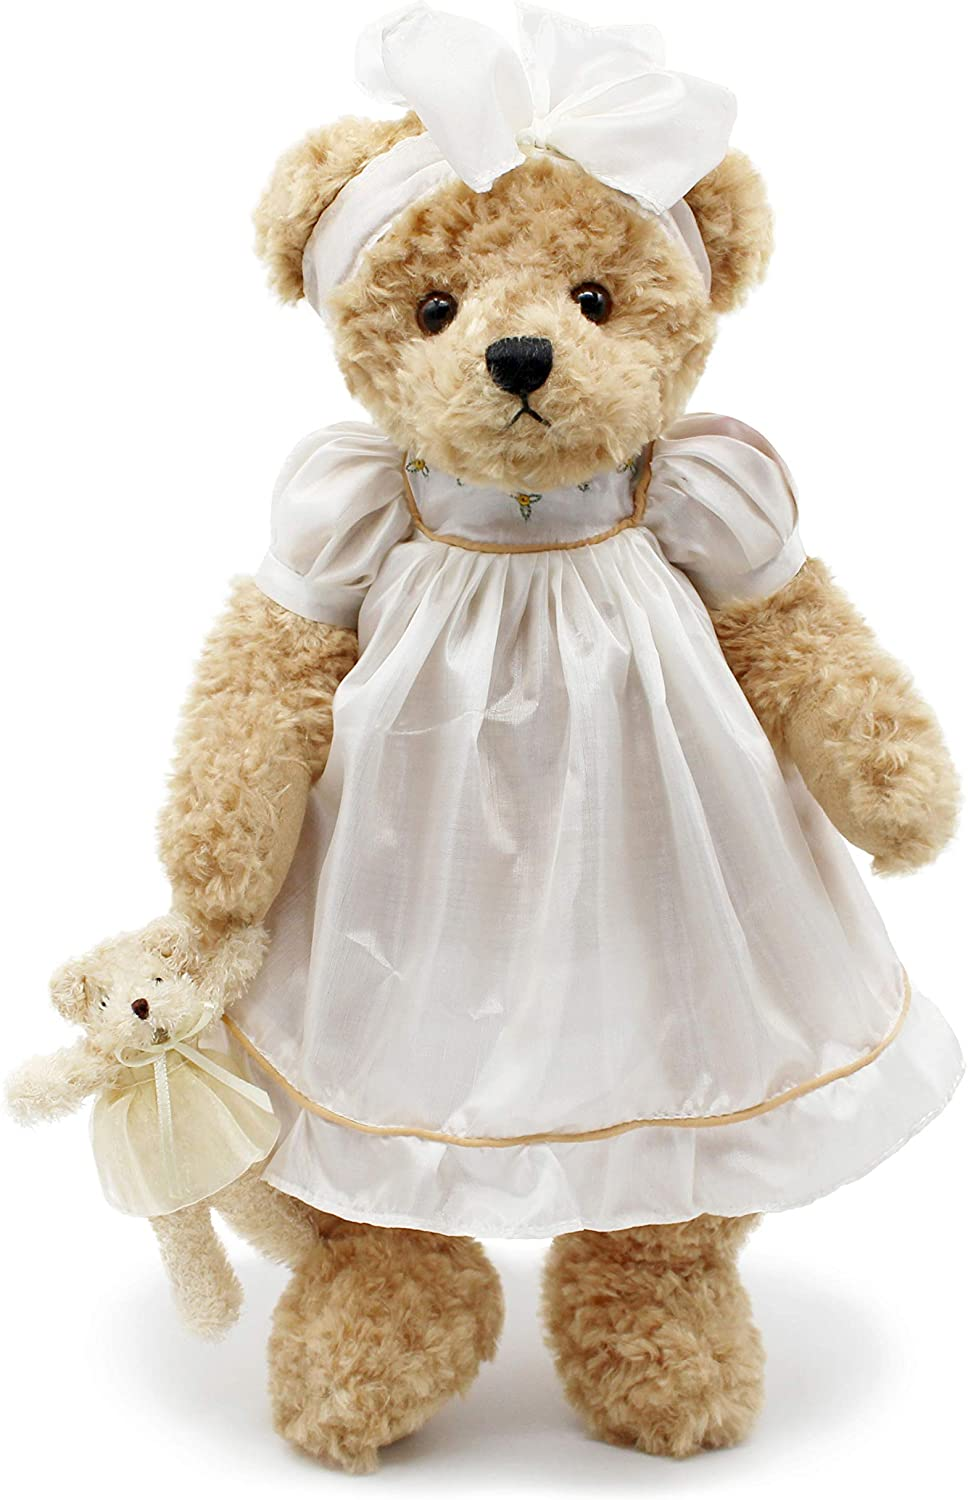 Oitscute Max 70% OFF Teddy Bears Baby Cute Soft for Plush Animal Stuffed Max 80% OFF Toy